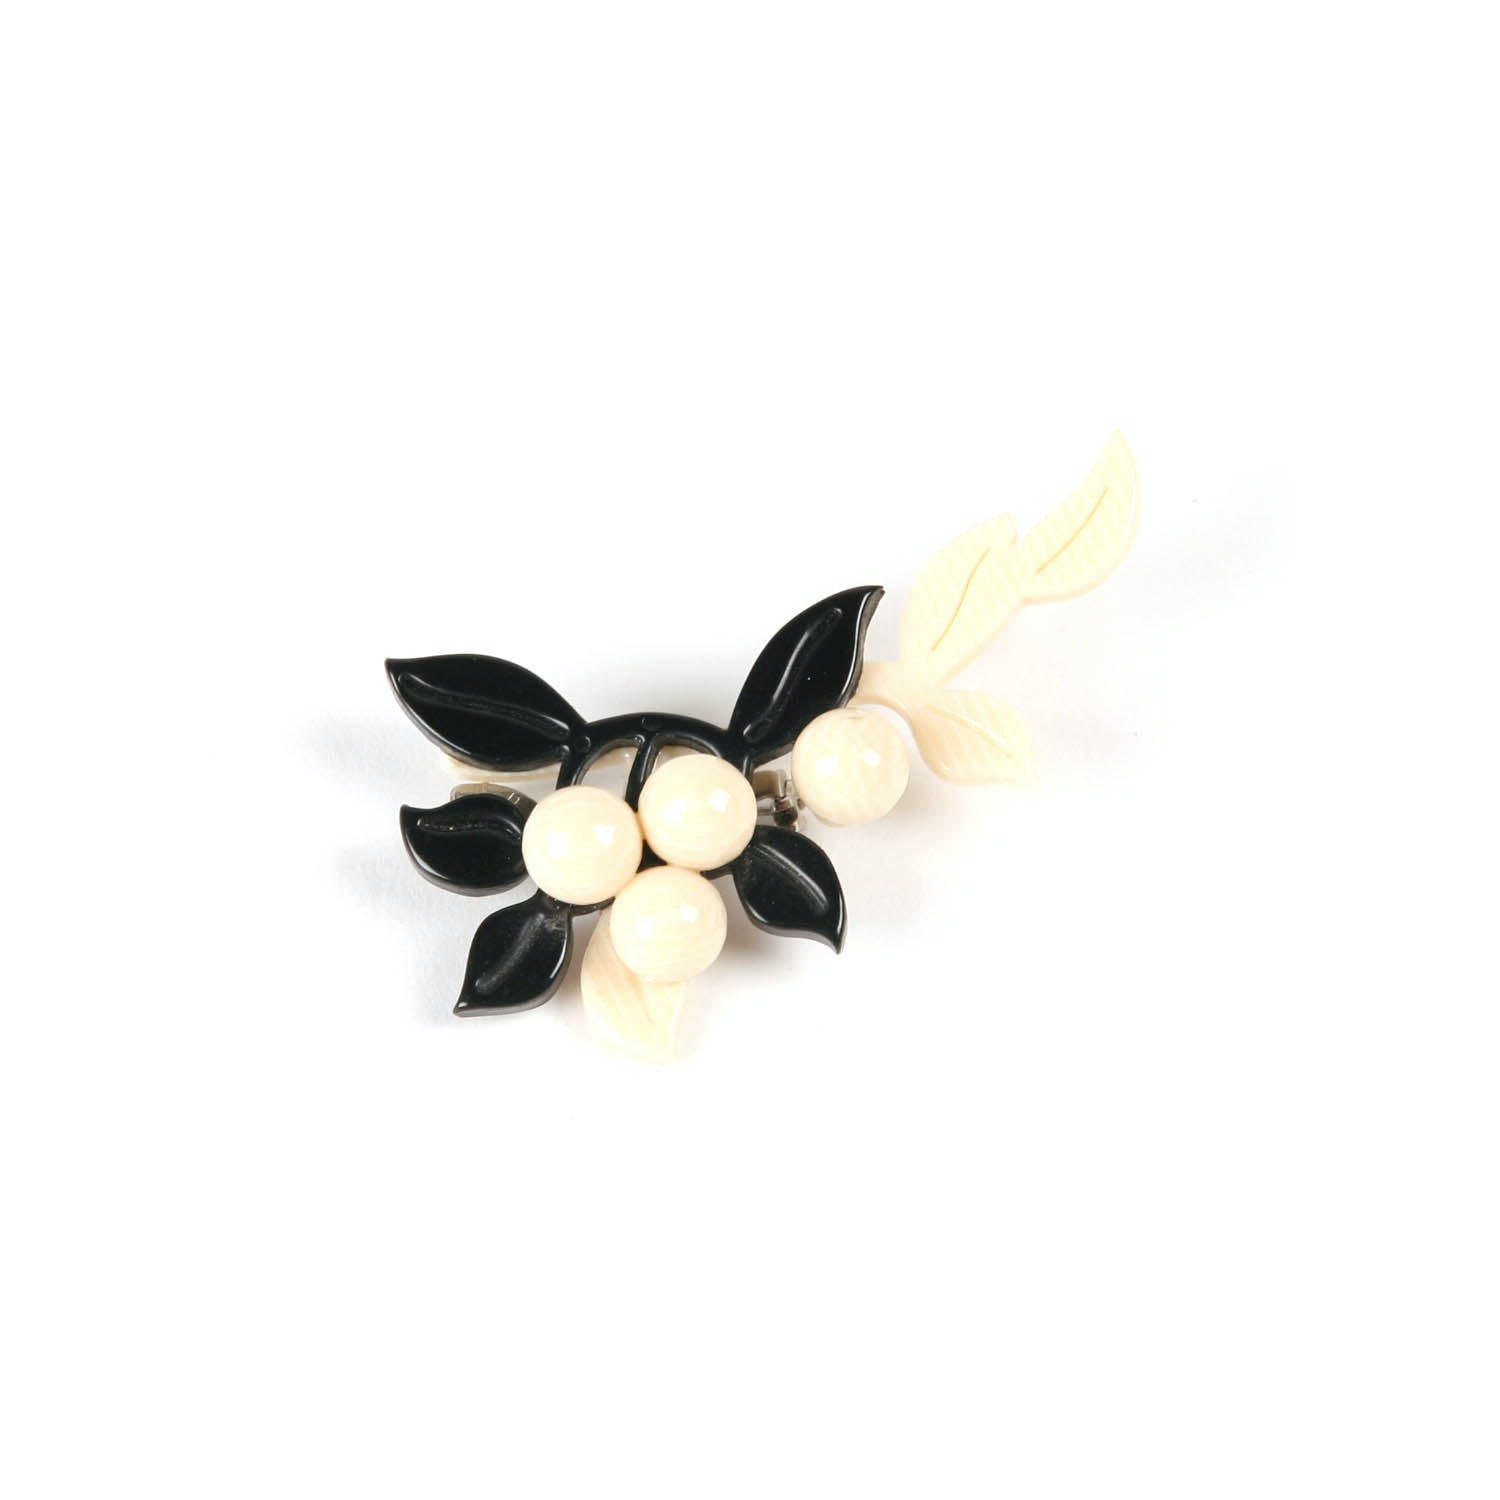 Vintage Designer Lea Stein Lucite Resin Black and White Flower Brooch